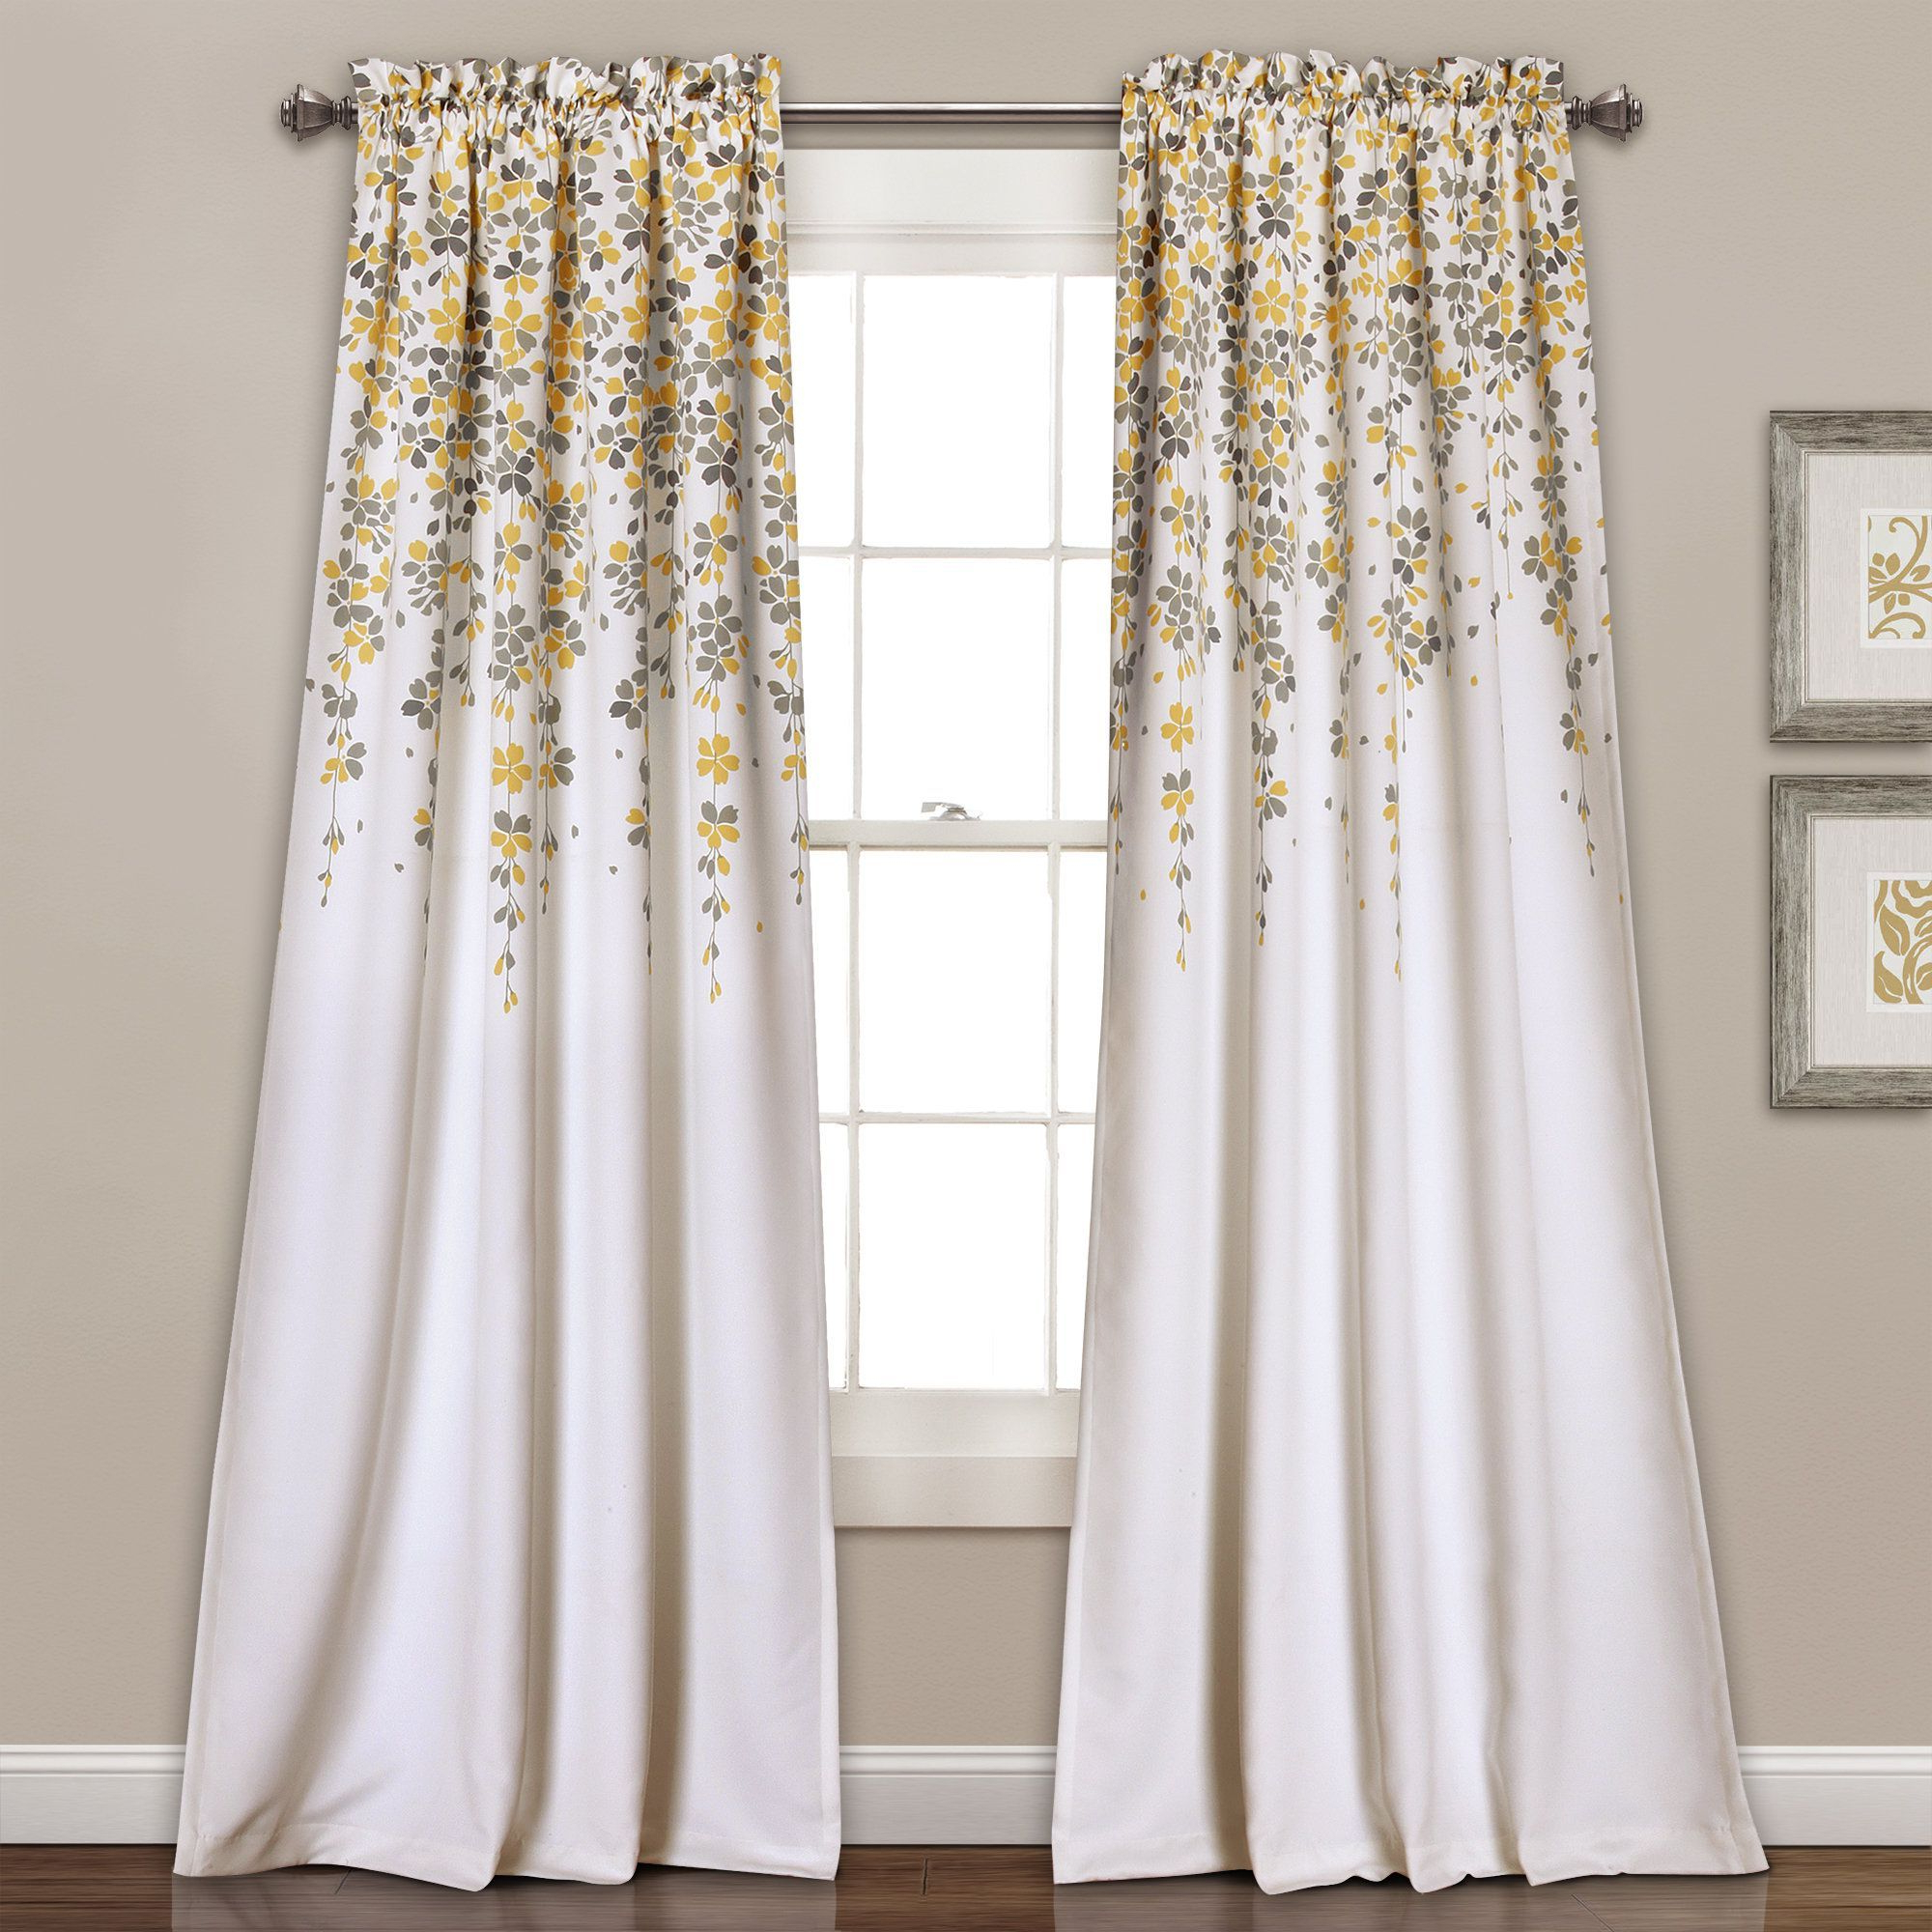 Recent Lush Decor Weeping Flowers Room Darkening Window Curtain In Room Darkening Window Curtain Panel Pairs (View 13 of 20)